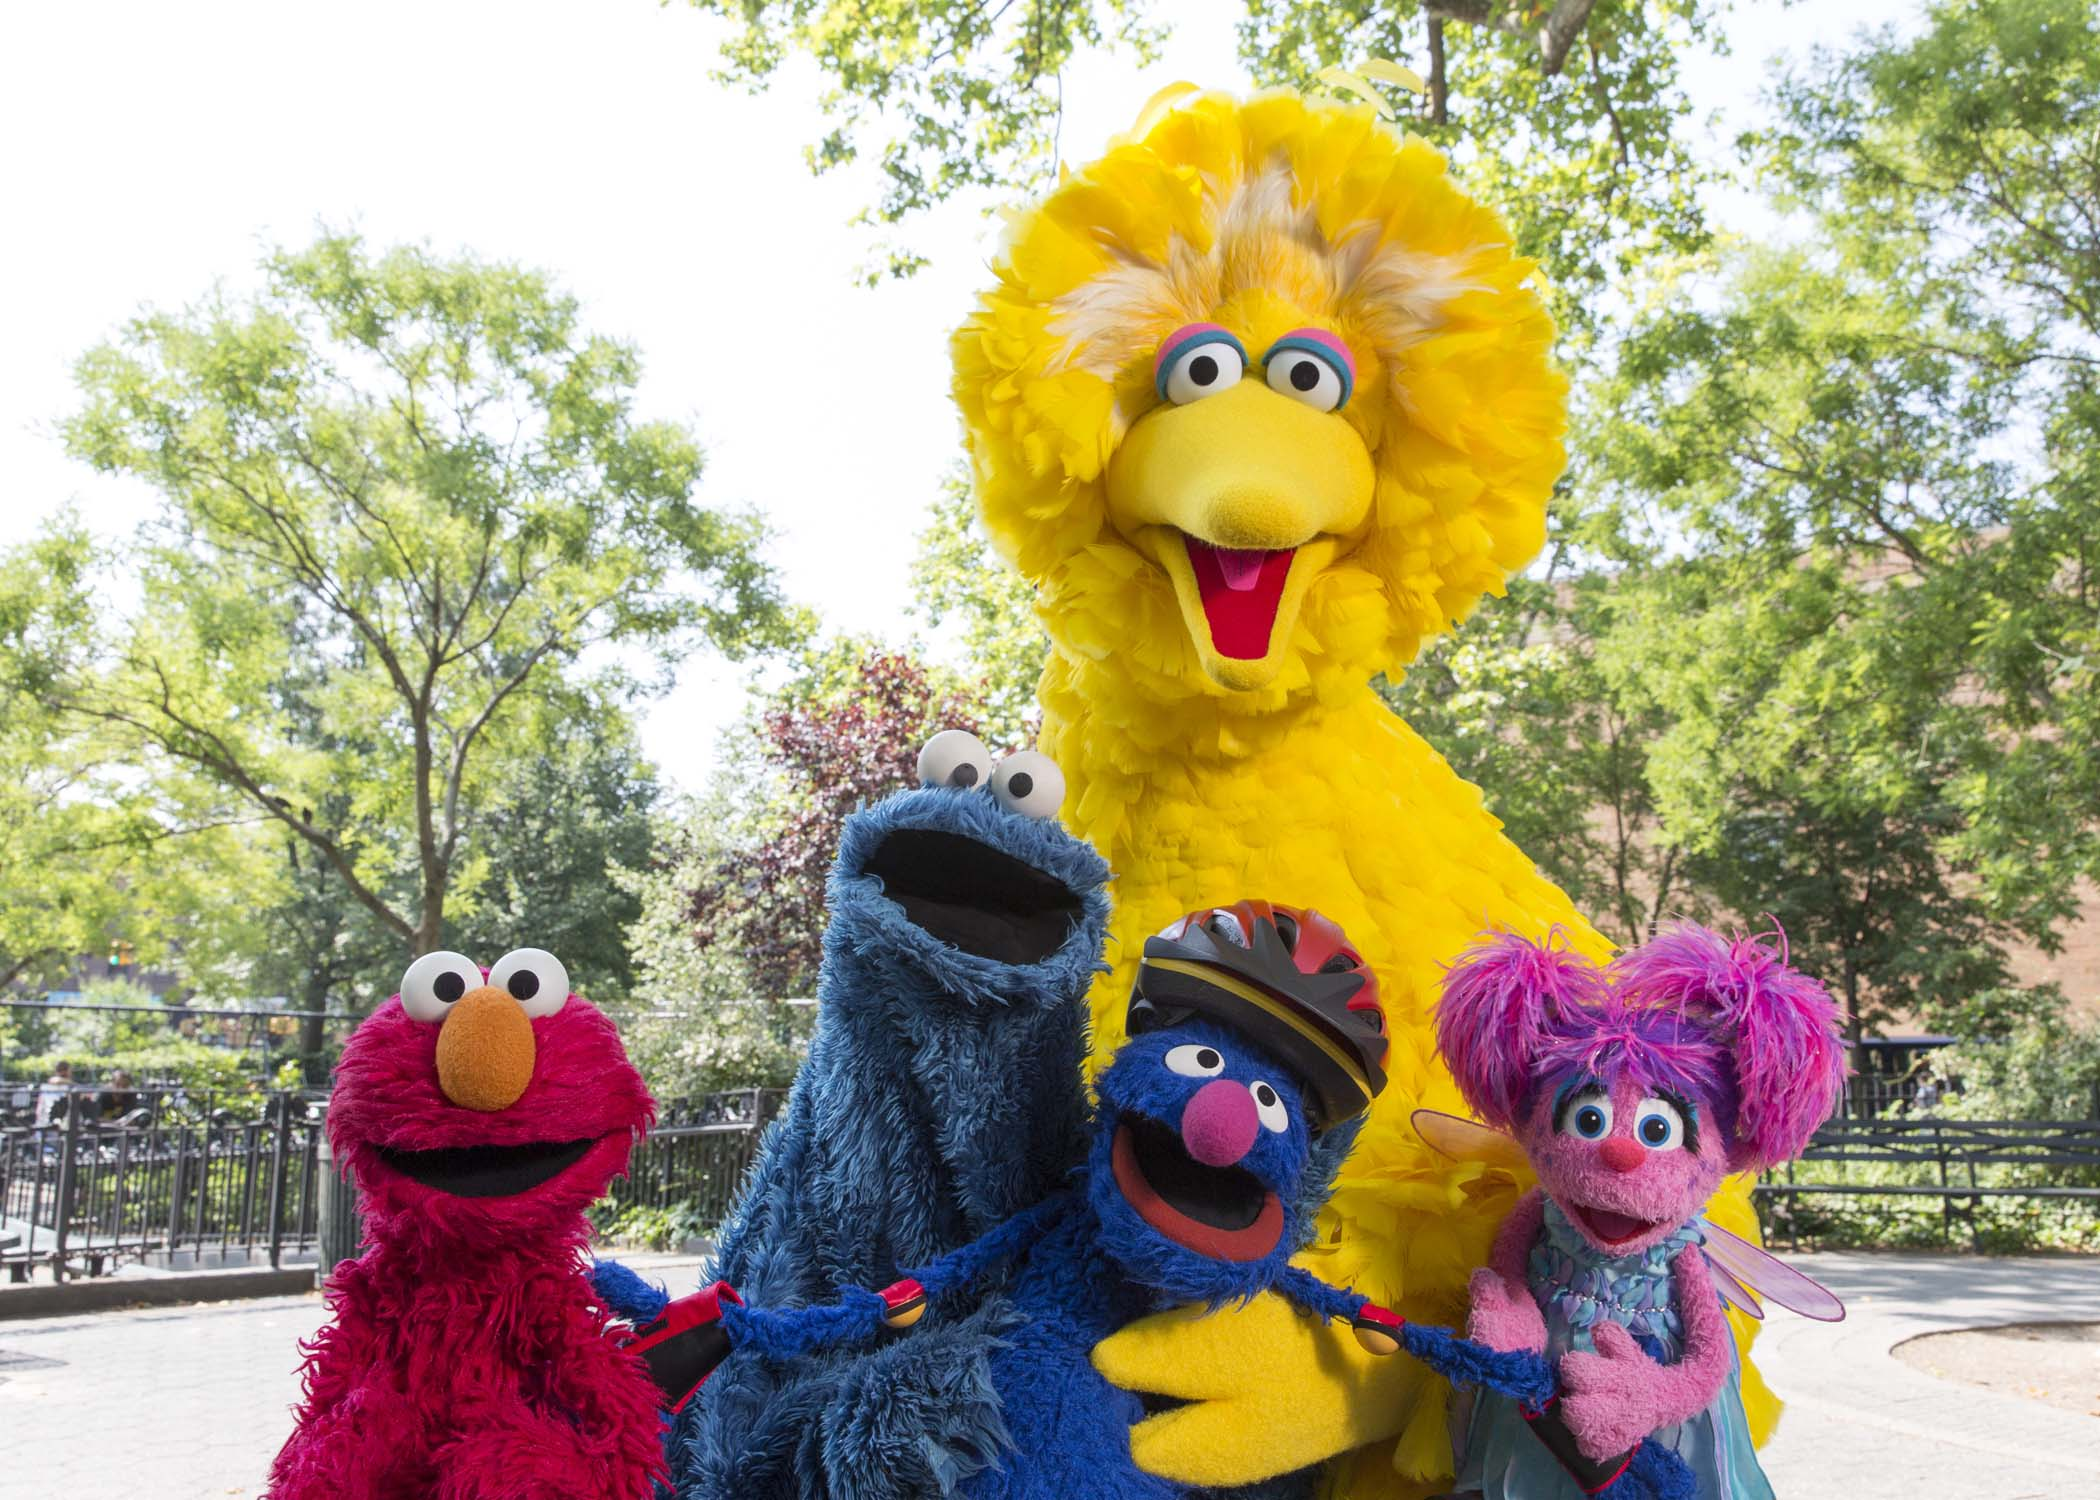 PBS drops hourlong 'Sesame Street' from fall schedule | Current